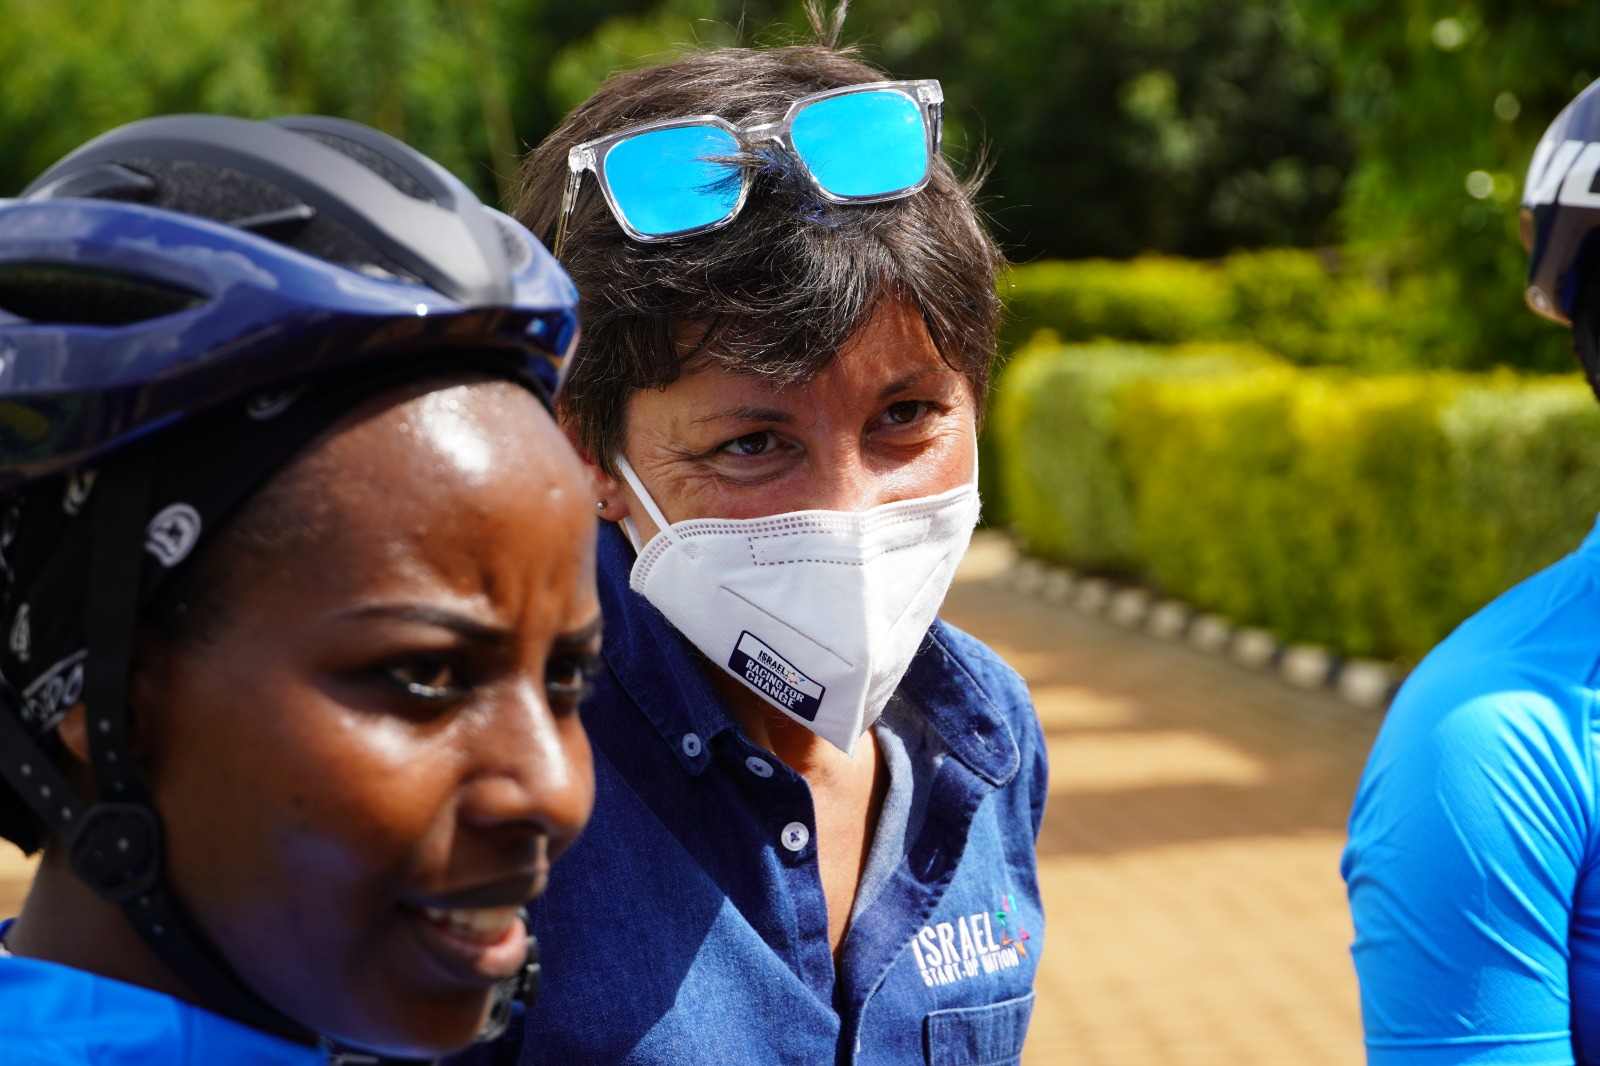 #RacingForChange: our visit to the only women's cycling club in Rwanda